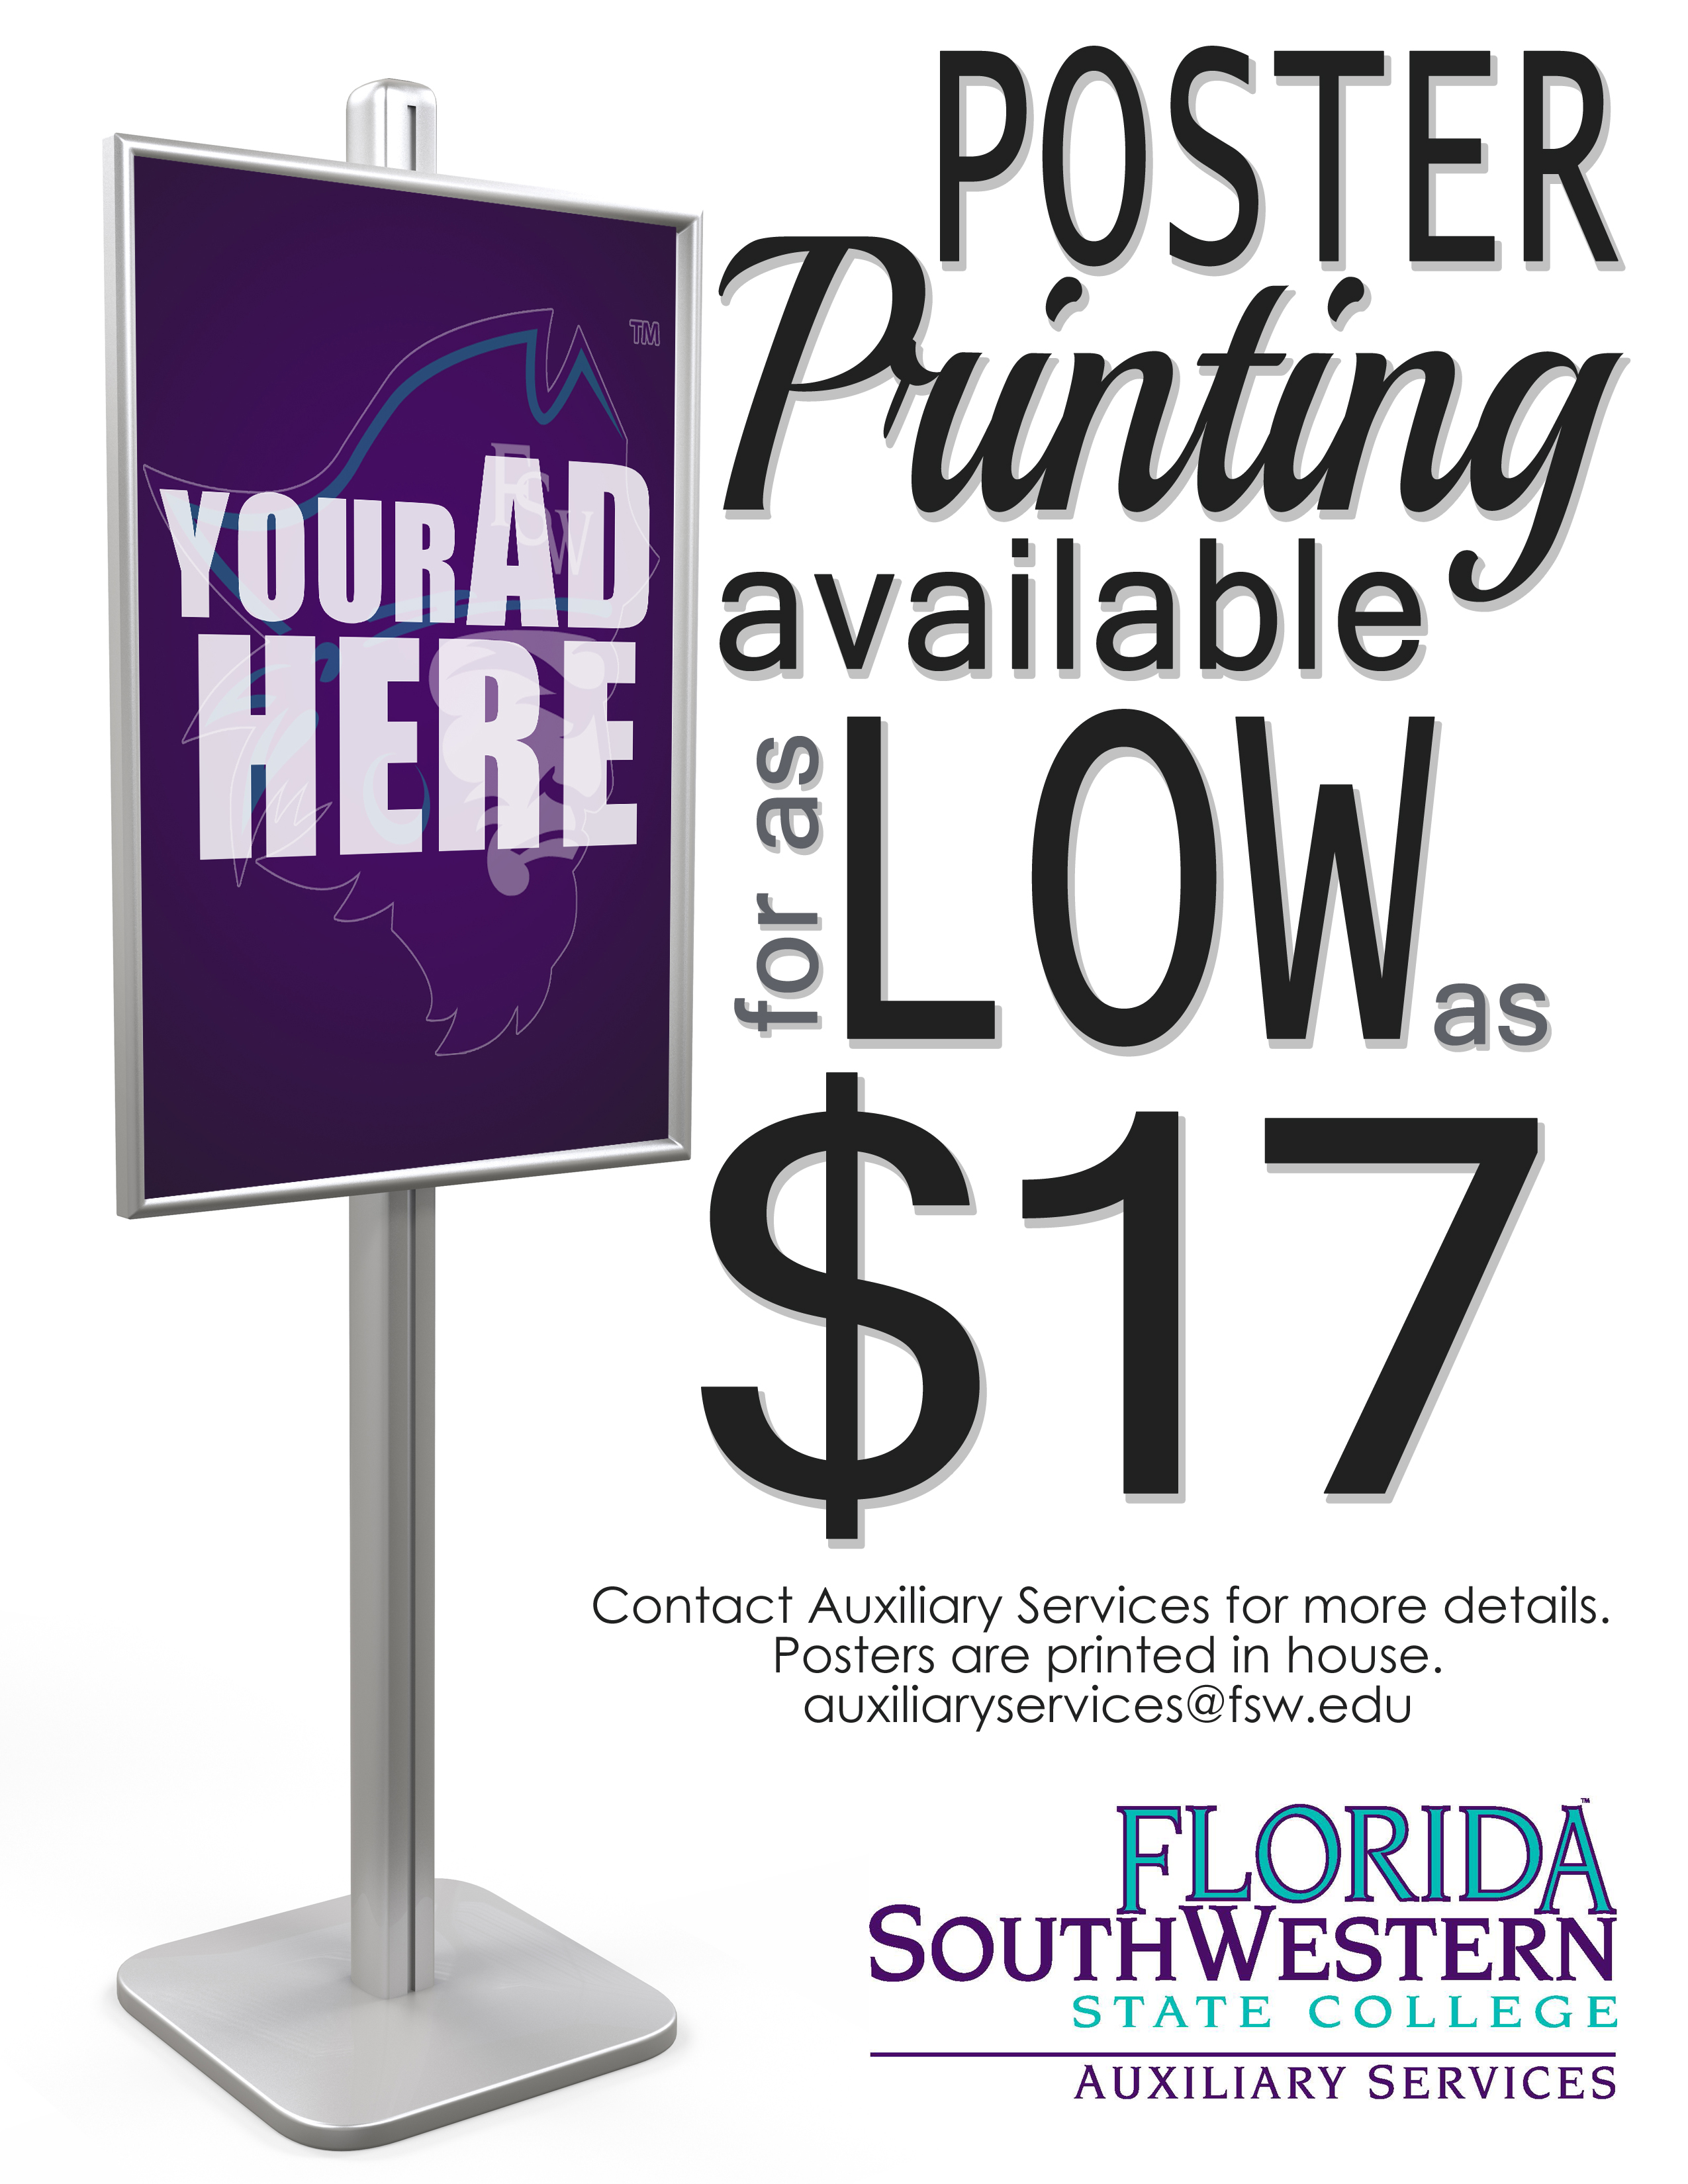 Advertisement for printing services